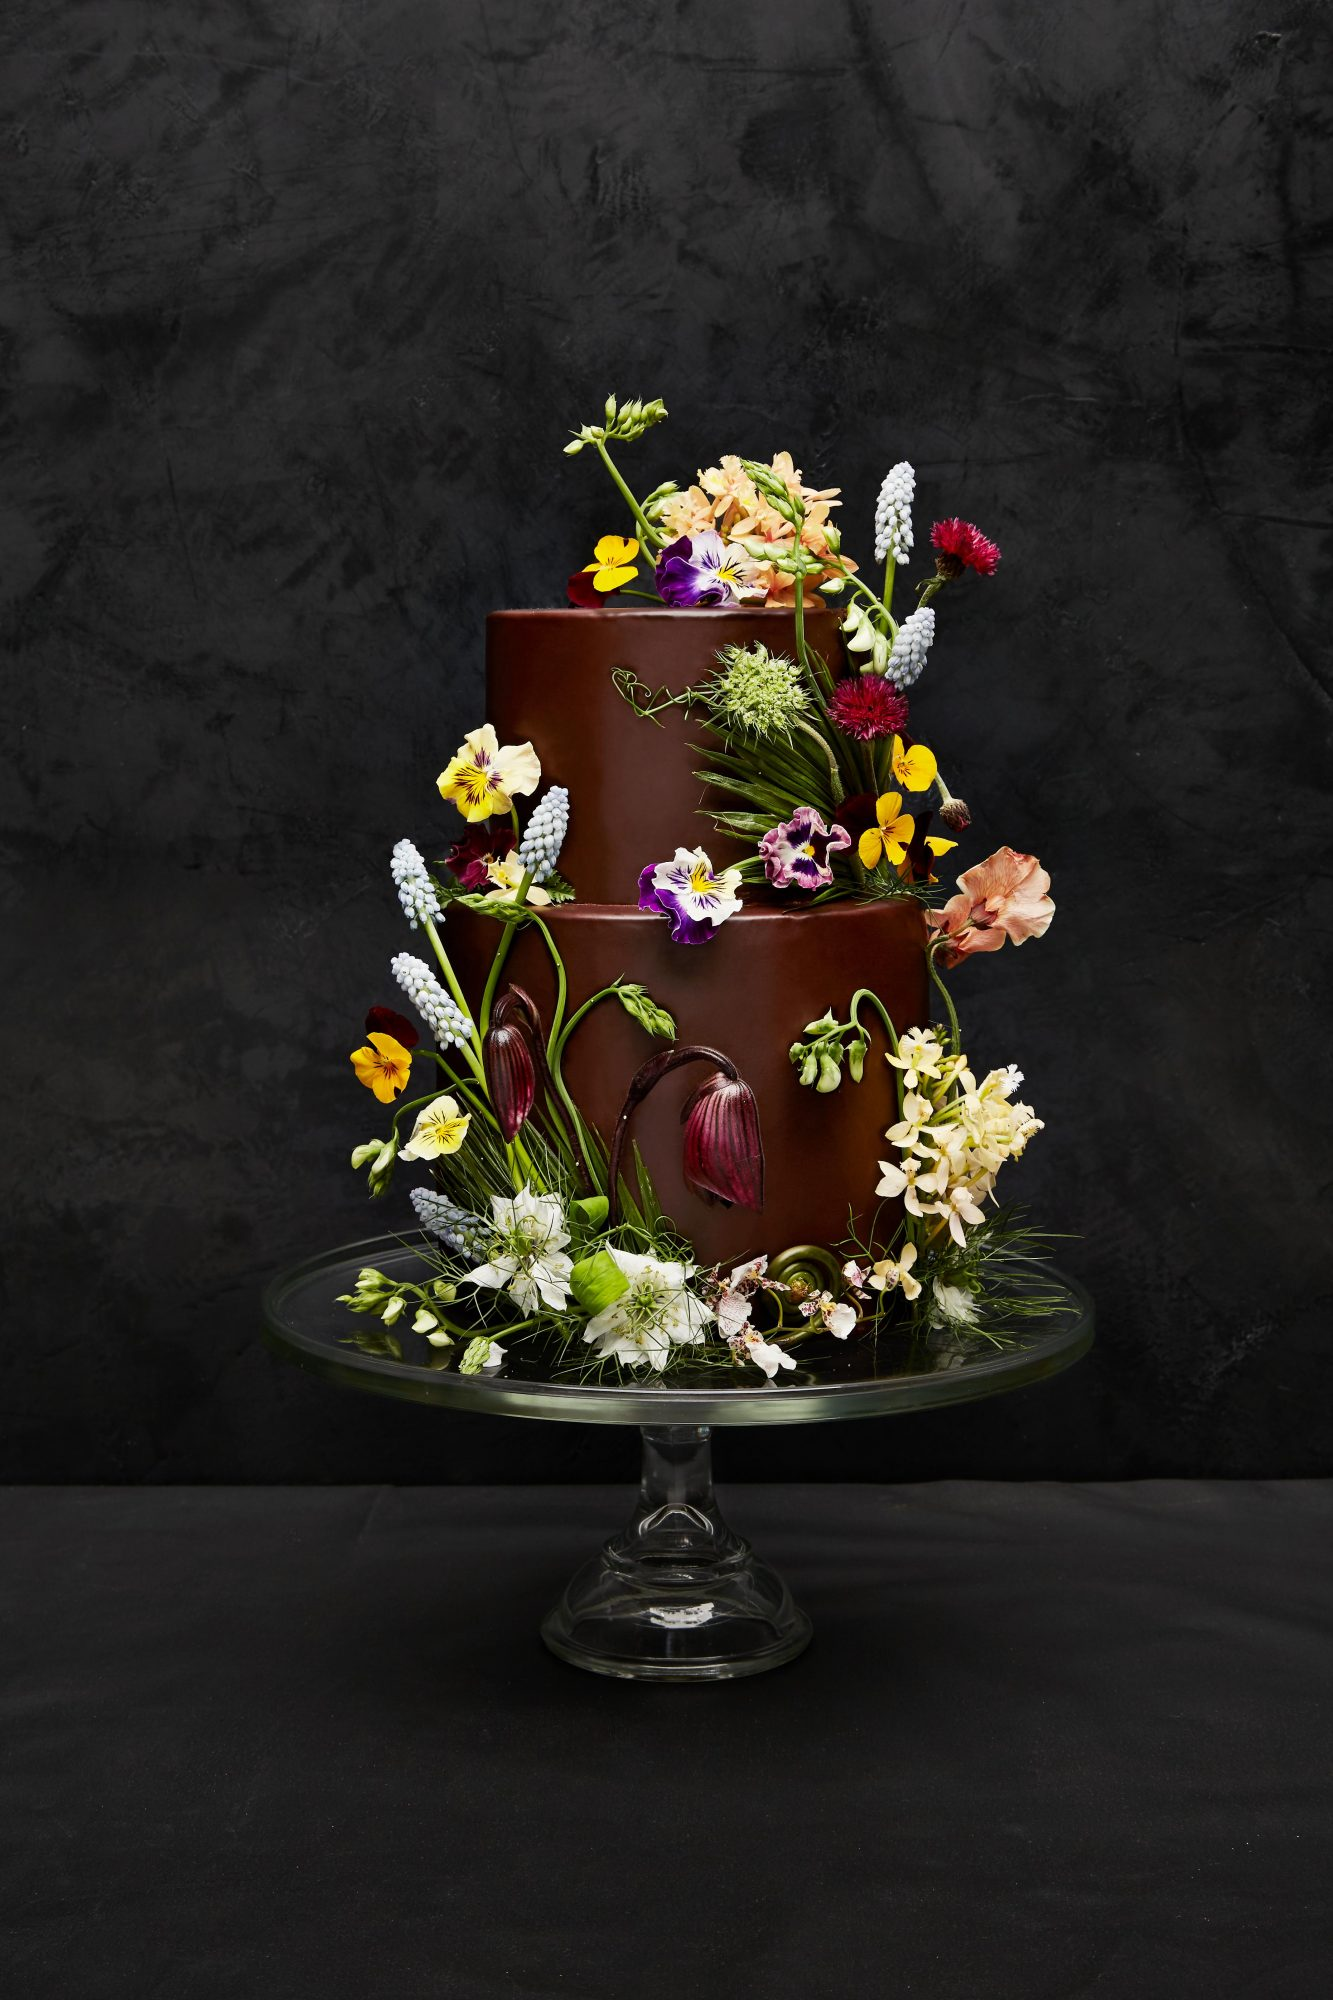 Tiered chocolate cake with flower decor